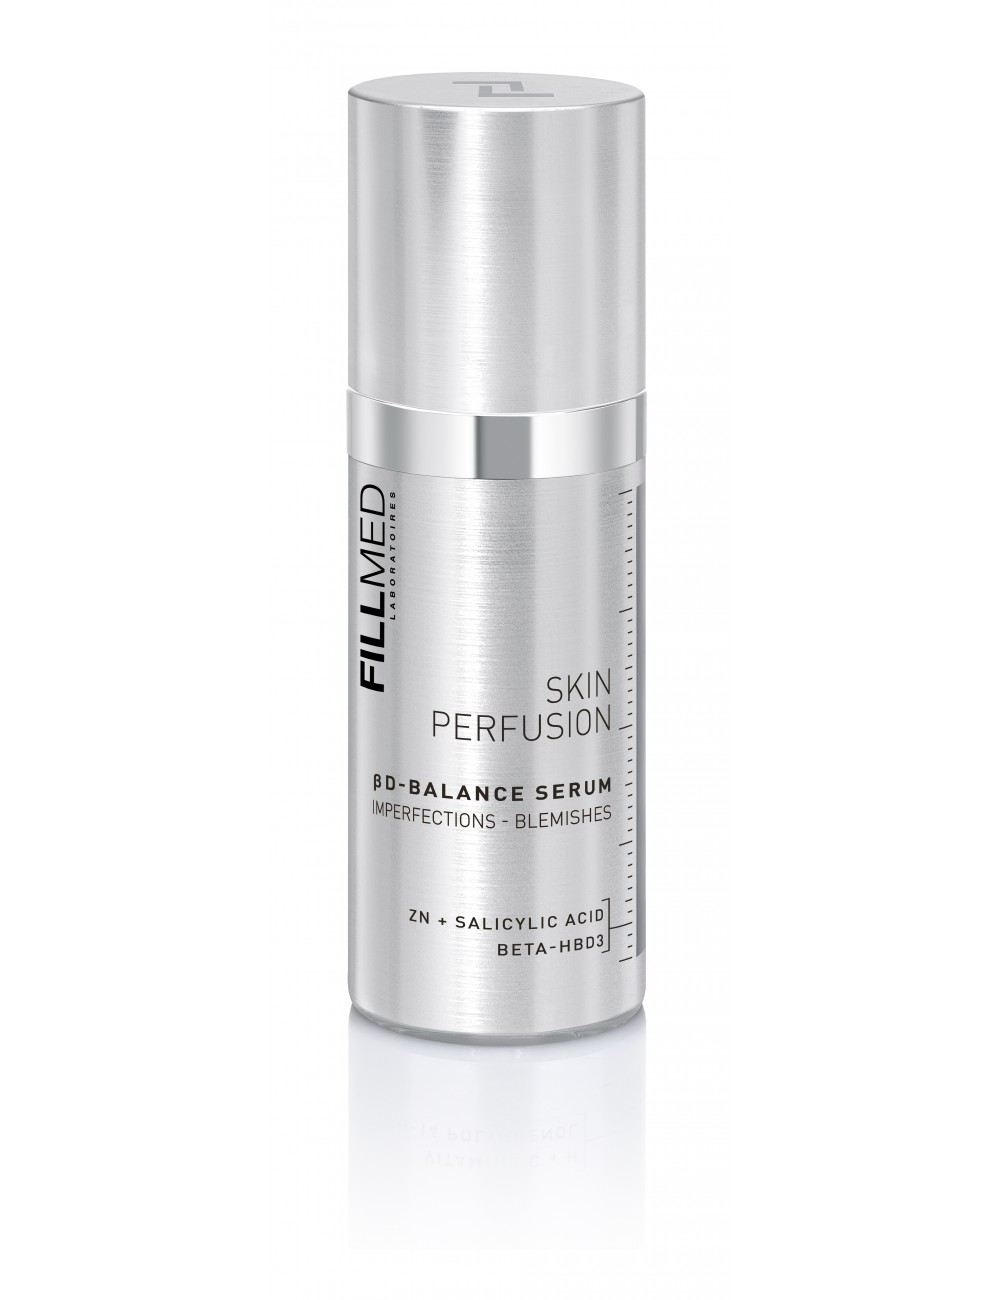 BD-BALANCE SERUM 30ml